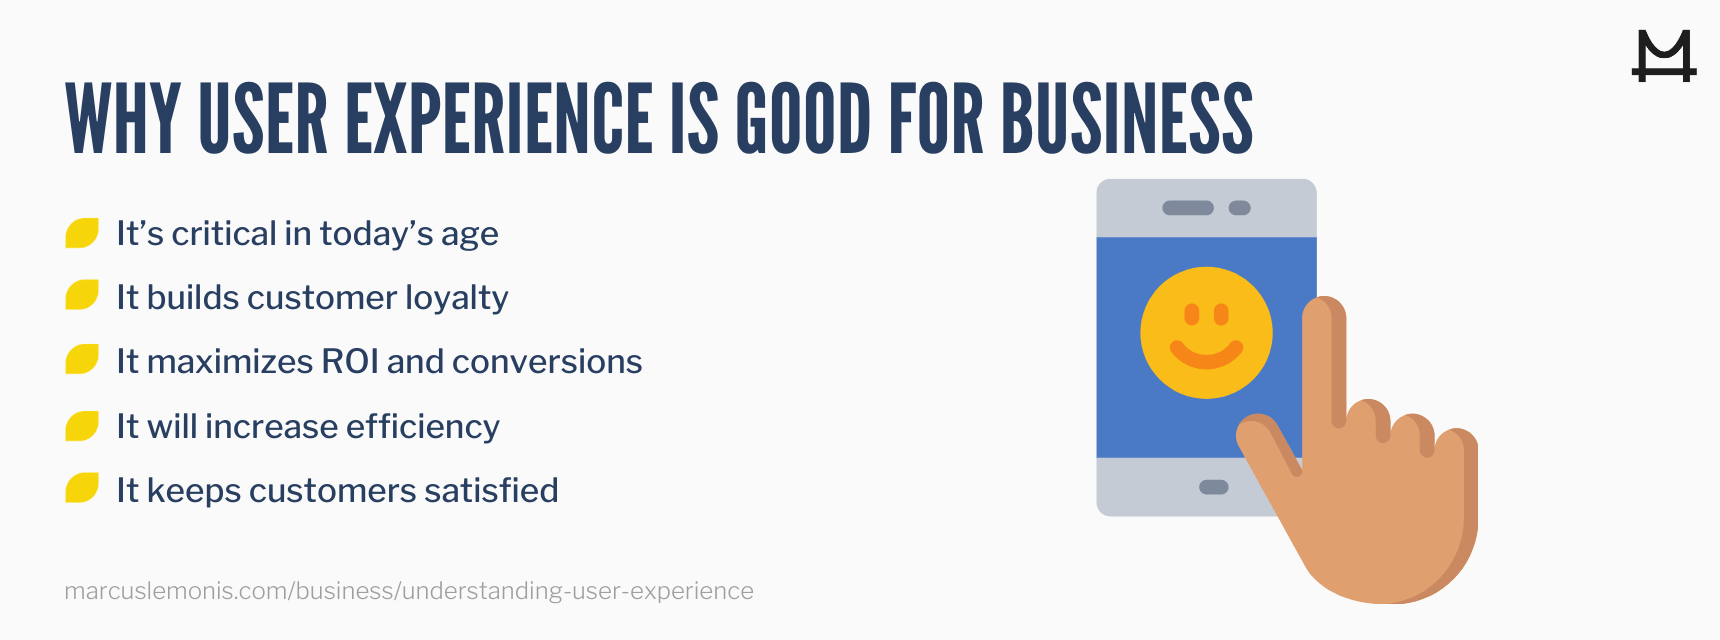 5 reasons user experience is important